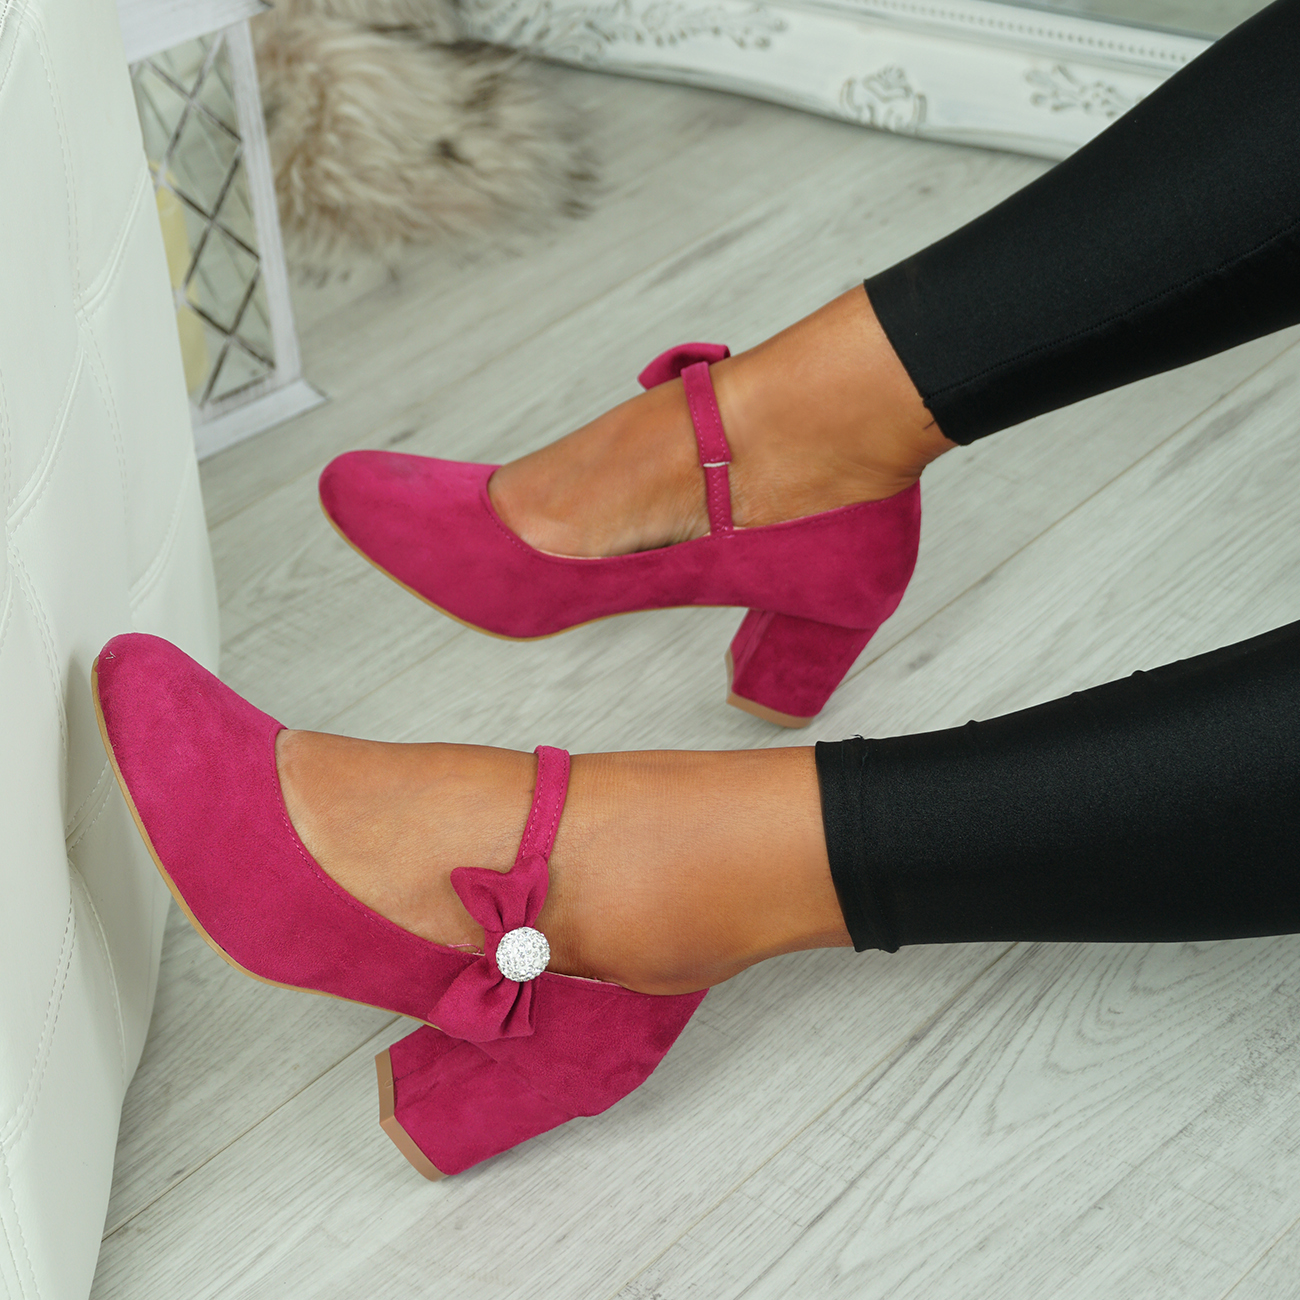 NEW-WOMENS-BLOCK-HEEL-PUMPS-BOW-BUCKLE-STRAP-ROUNDED-TOE-CASUAL-SHOES-SIZE thumbnail 14